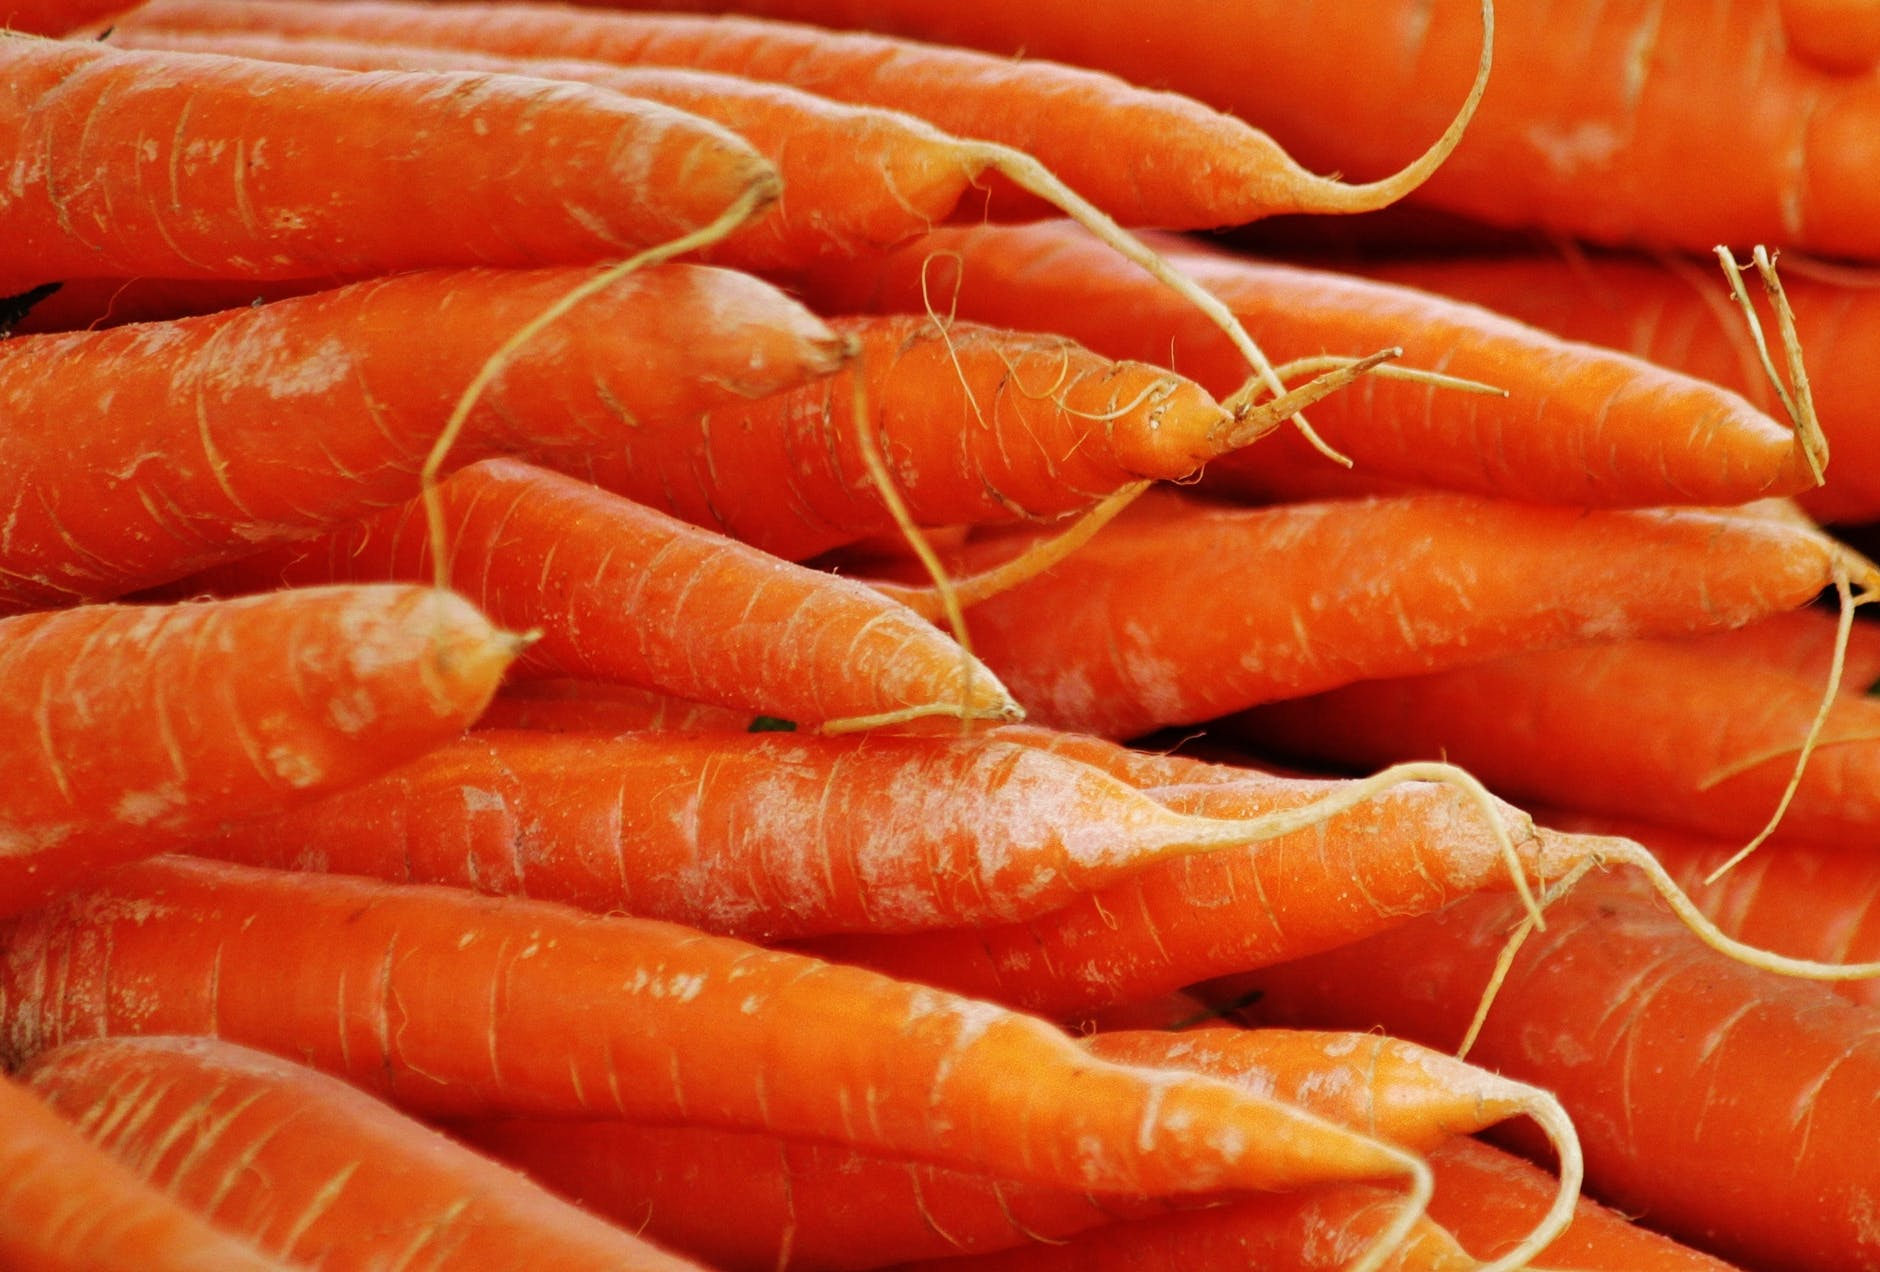 How to Blanch Carrots for Freezing